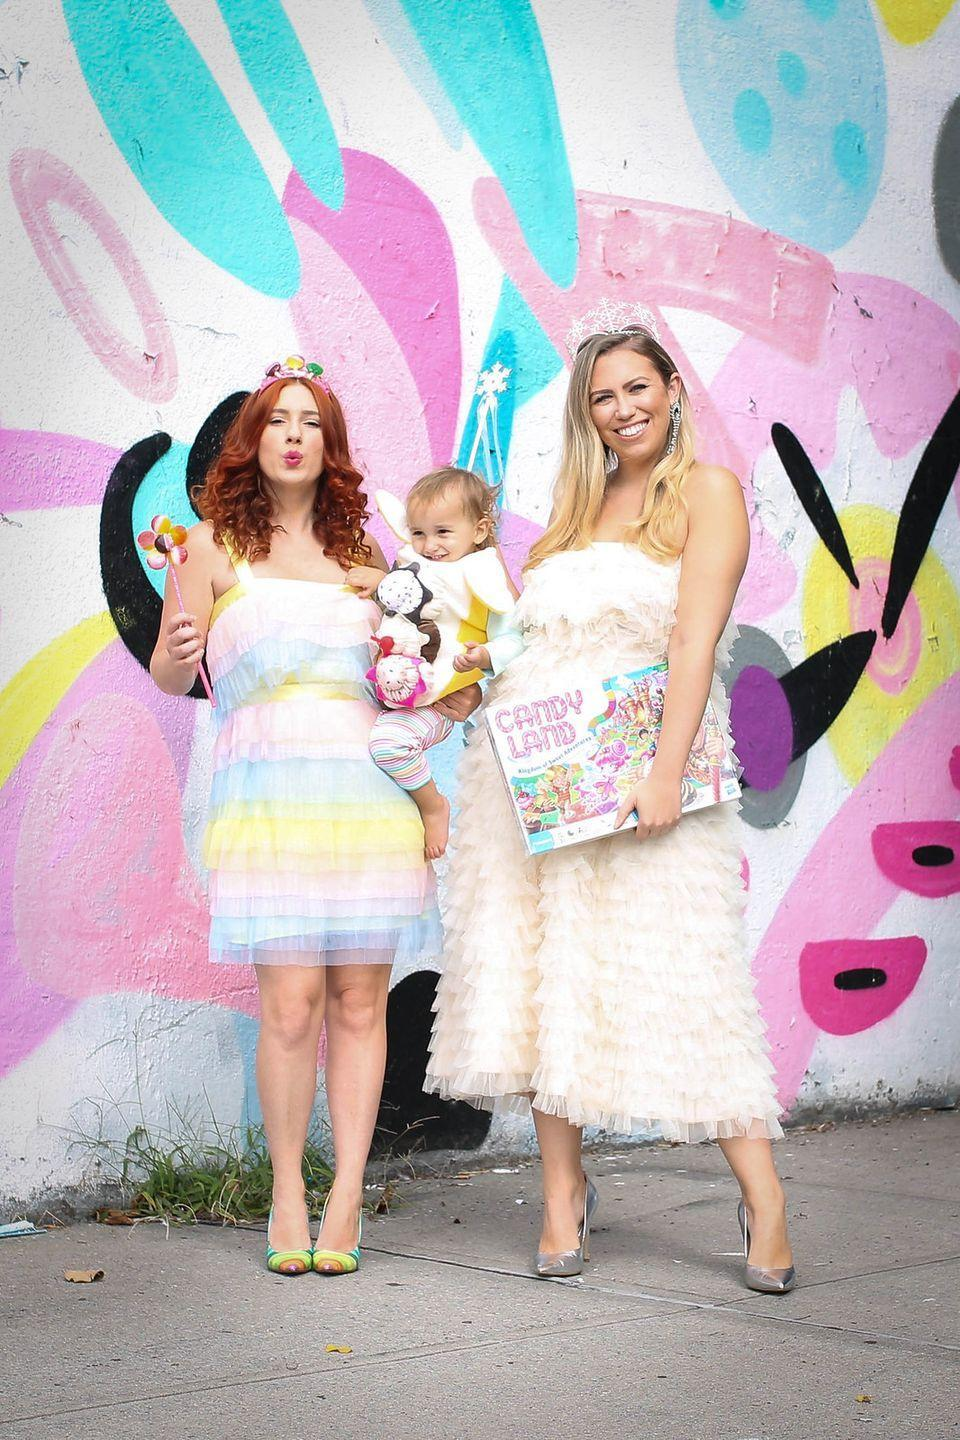 """<p>If your friends played Candyland over and over again as kids, you'll love this nostalgic costume. The third member of the trio was dressed as a sugary sundae, but you can also rock the costume of any other board game favorite. </p><p><a class=""""link rapid-noclick-resp"""" href=""""https://www.amazon.com/Makone-Crystal-Birthday-Wedding-Style-5/dp/B07DGFHY1D/?tag=syn-yahoo-20&ascsubtag=%5Bartid%7C10055.g.28073110%5Bsrc%7Cyahoo-us"""" rel=""""nofollow noopener"""" target=""""_blank"""" data-ylk=""""slk:SHOP CROWNS"""">SHOP CROWNS</a></p><p><em><a href=""""http://livingaftermidnite.com/2018/10/3-nostalgic-halloween-costumes-you-can-pull-together-quickly.html"""" rel=""""nofollow noopener"""" target=""""_blank"""" data-ylk=""""slk:Get the tutorial at Living After Midnite »"""" class=""""link rapid-noclick-resp"""">Get the tutorial at Living After Midnite »</a></em><br></p>"""